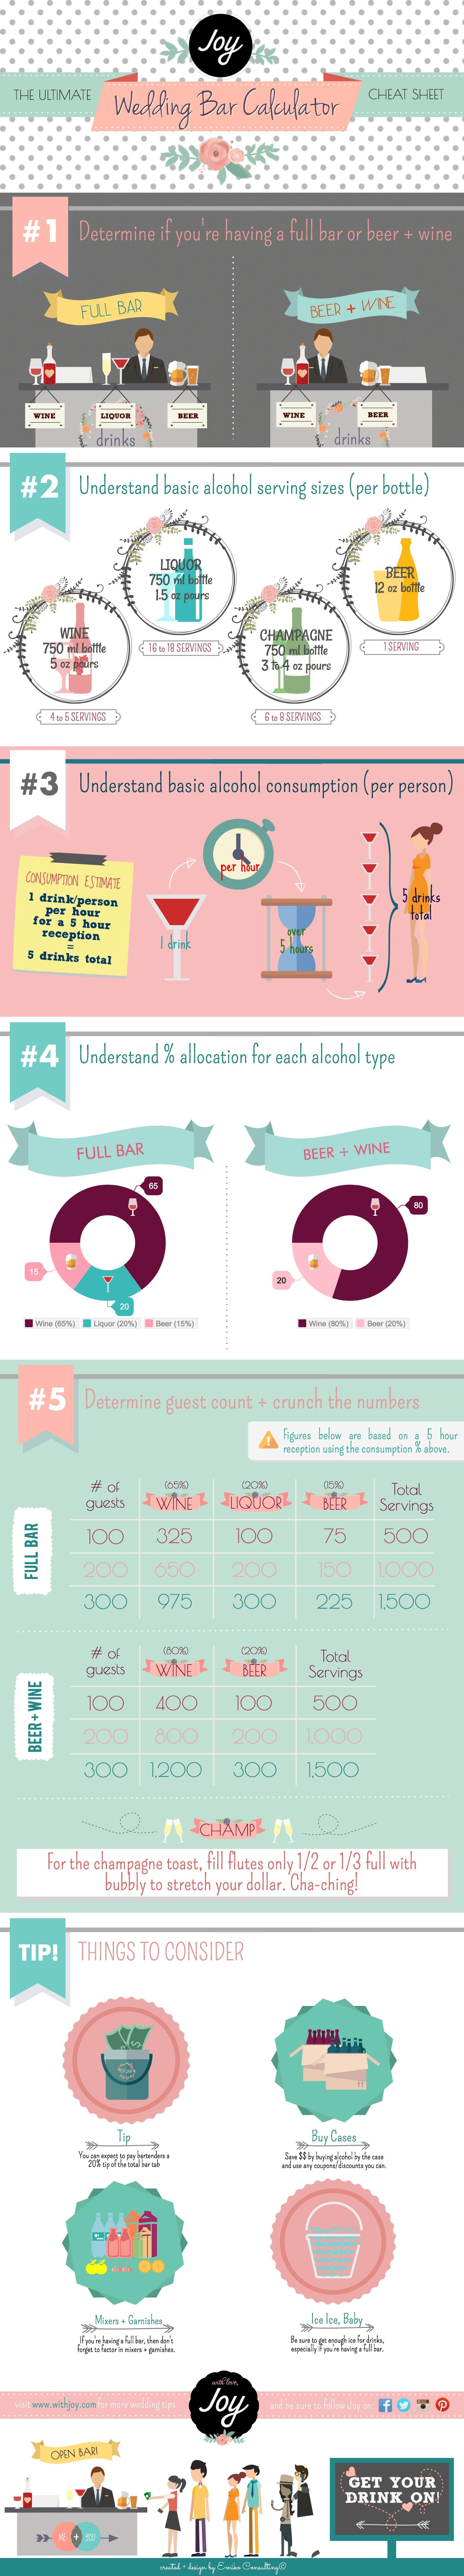 Wedding Bar Calculator Infographic Joy The